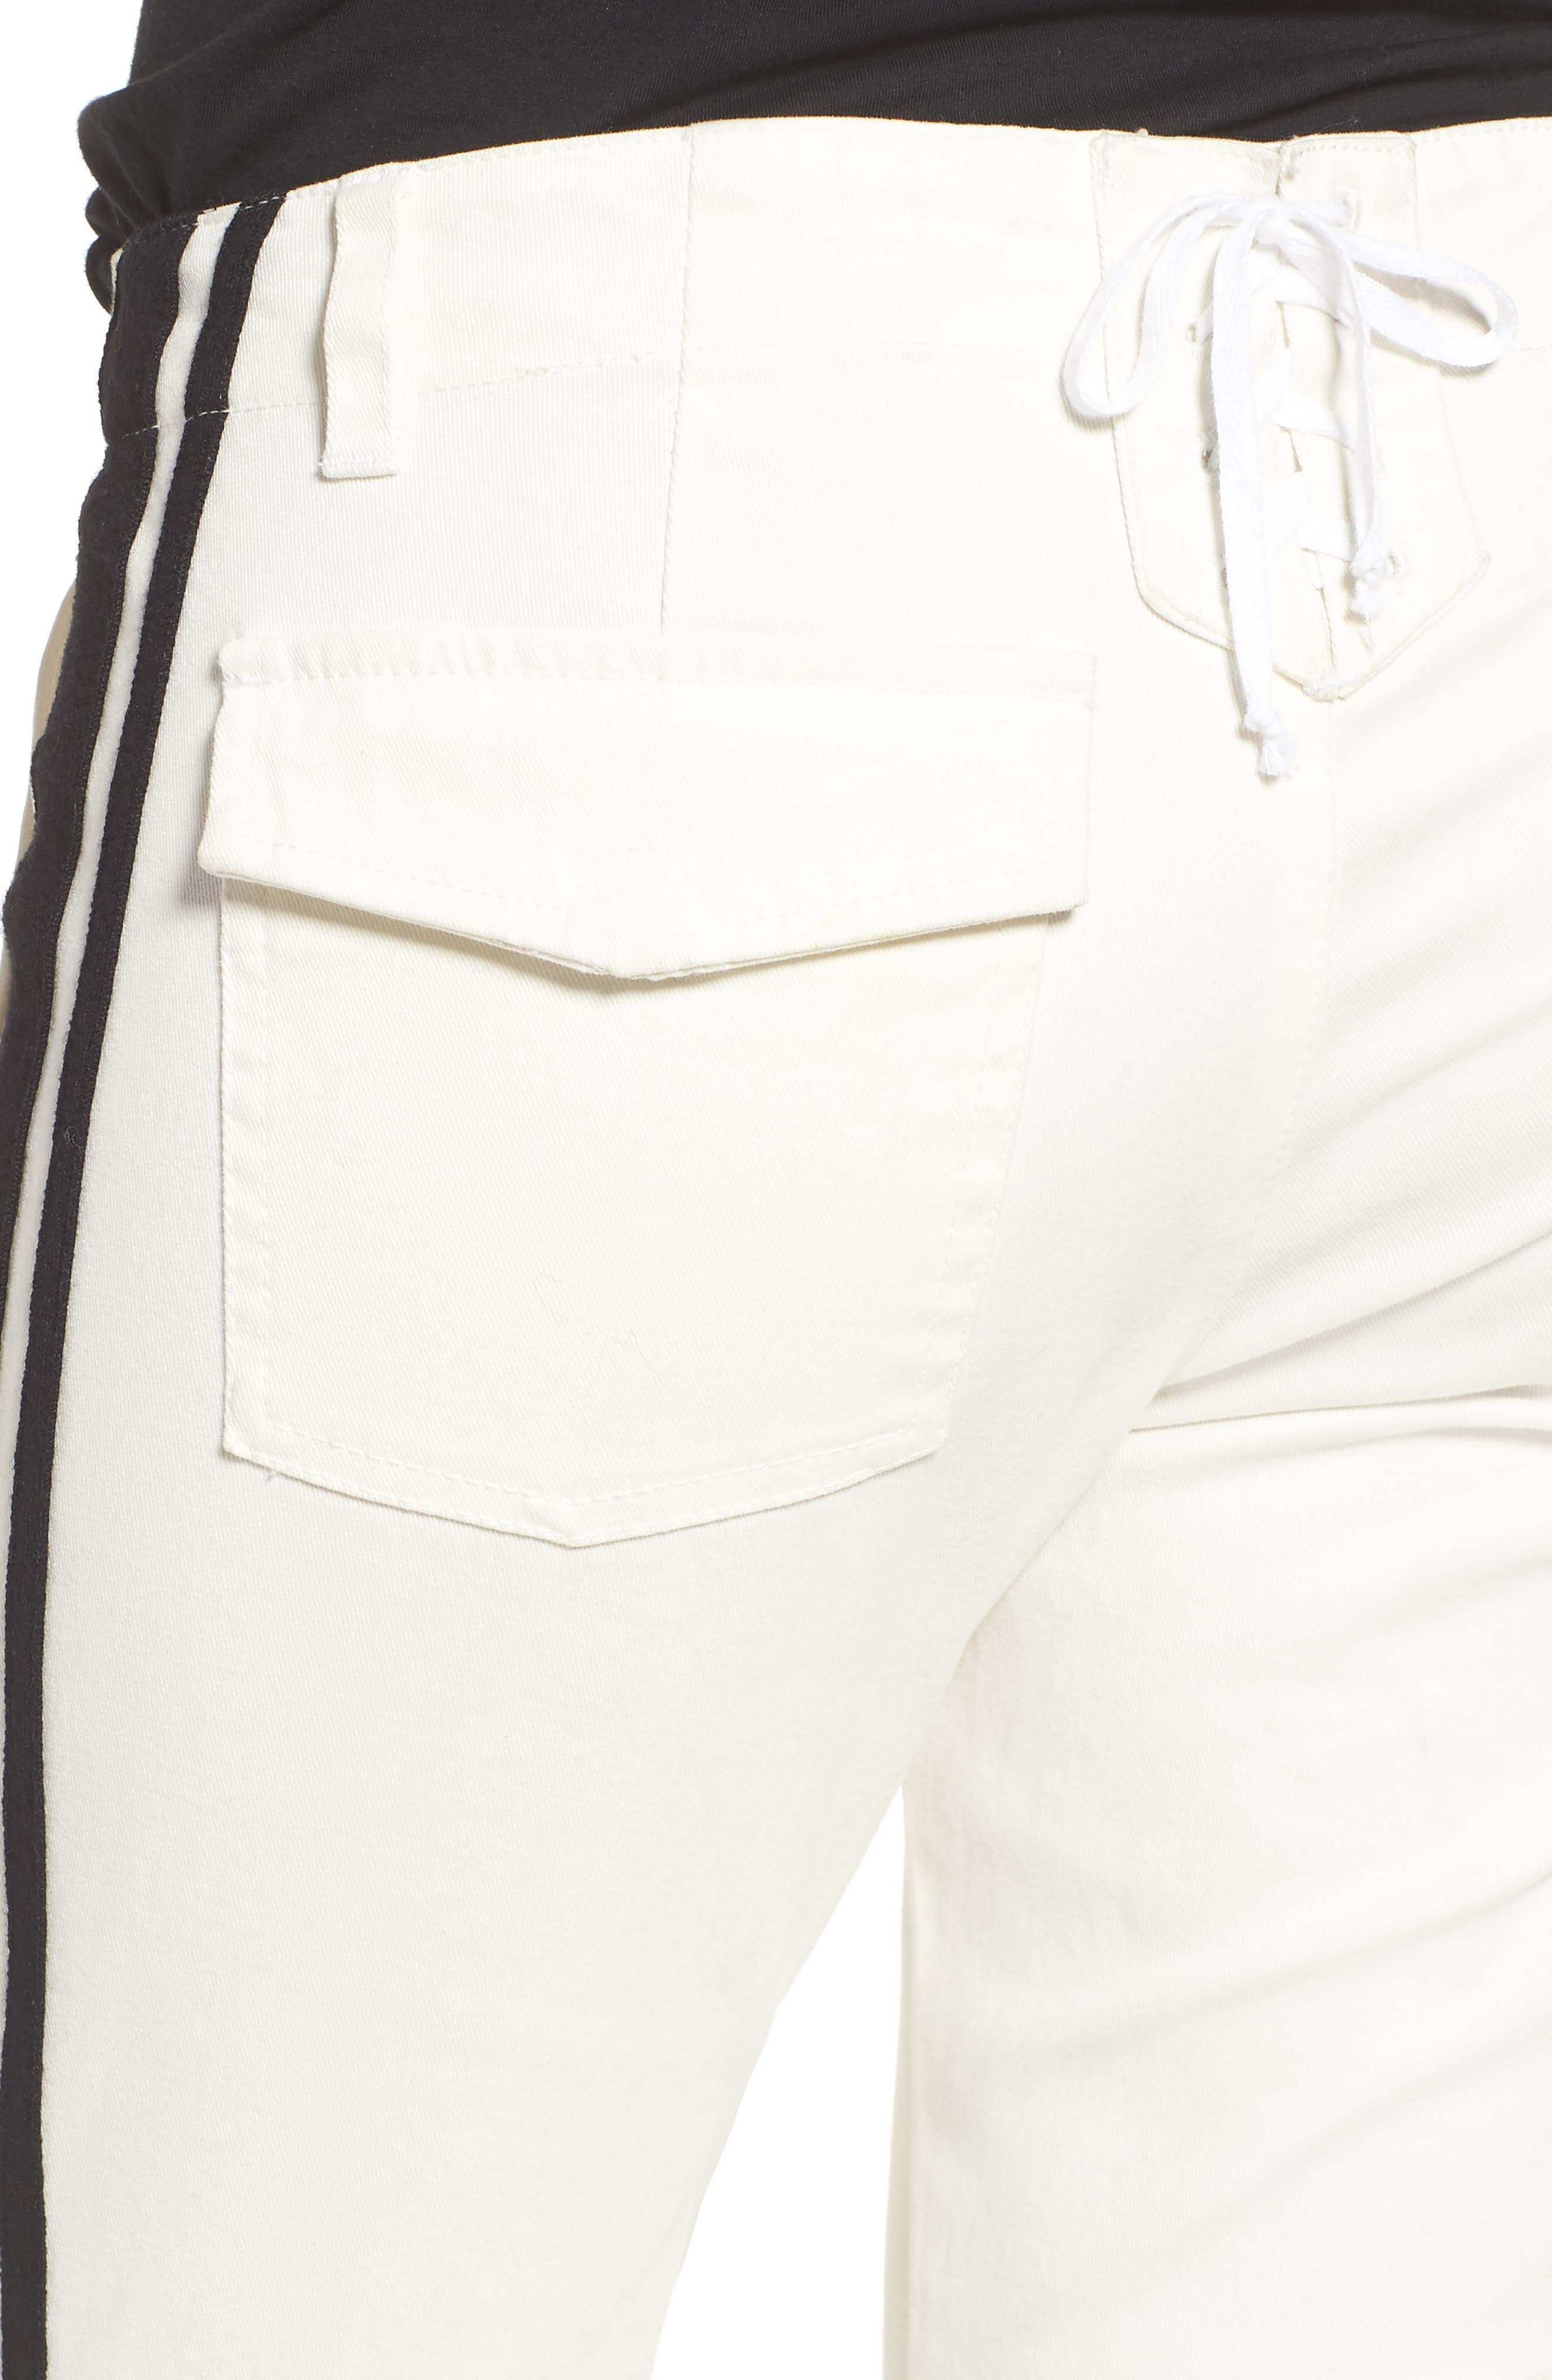 Offset Skinny Pants,                             Alternate thumbnail 4, color,                             WHITE